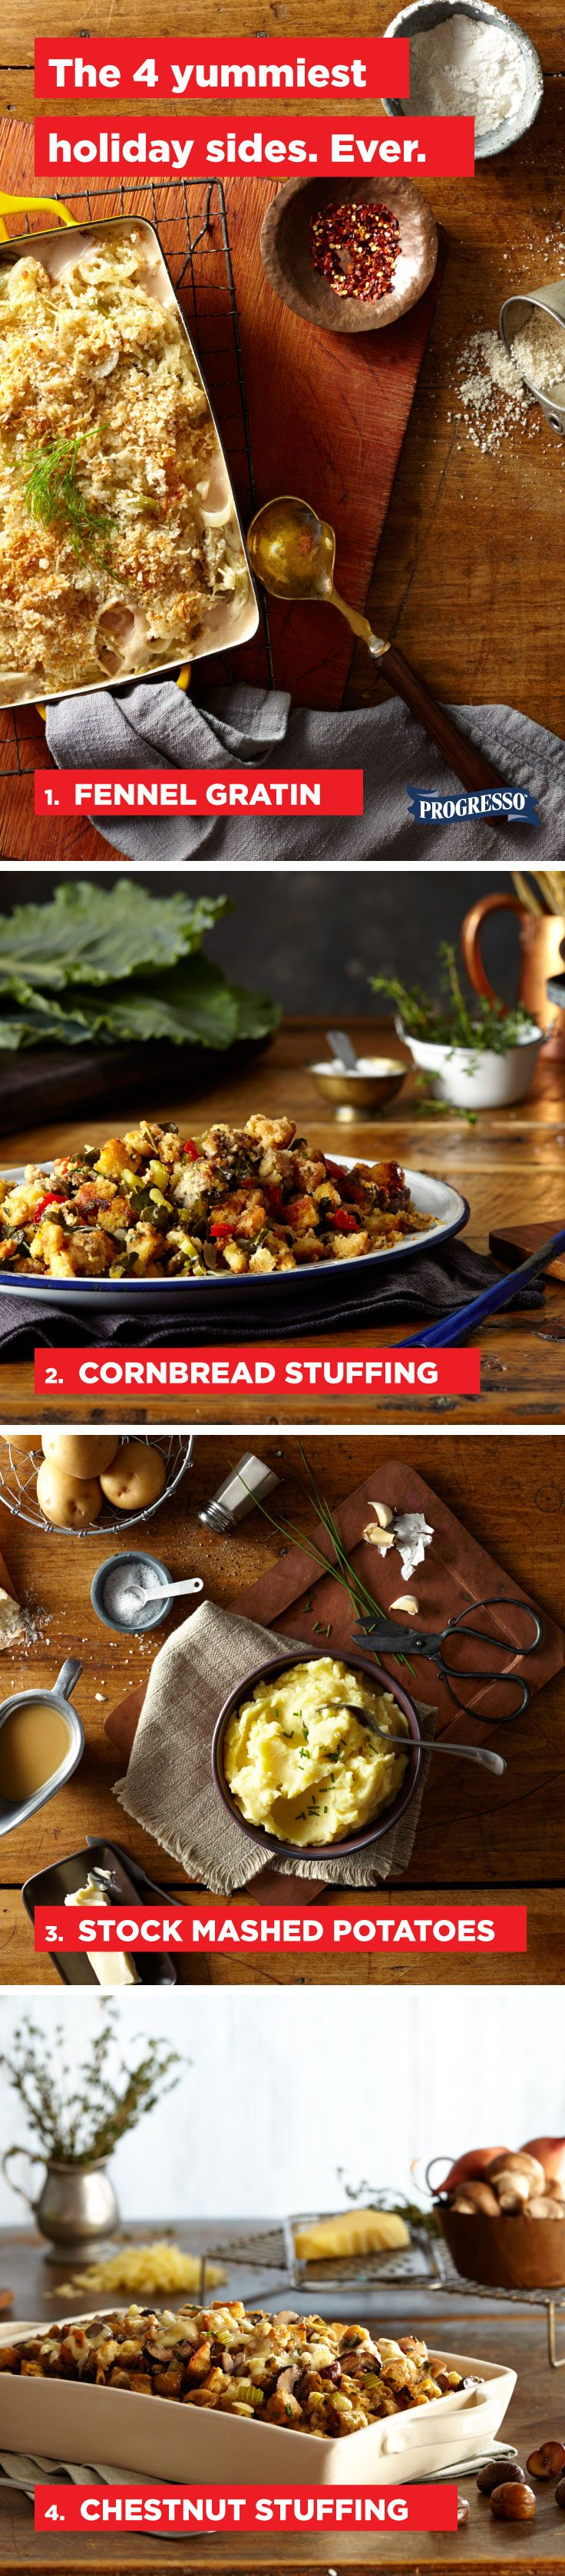 If you're a fan of things that taste good, we have four next-level holiday side dishes for you to bring to your next gathering.